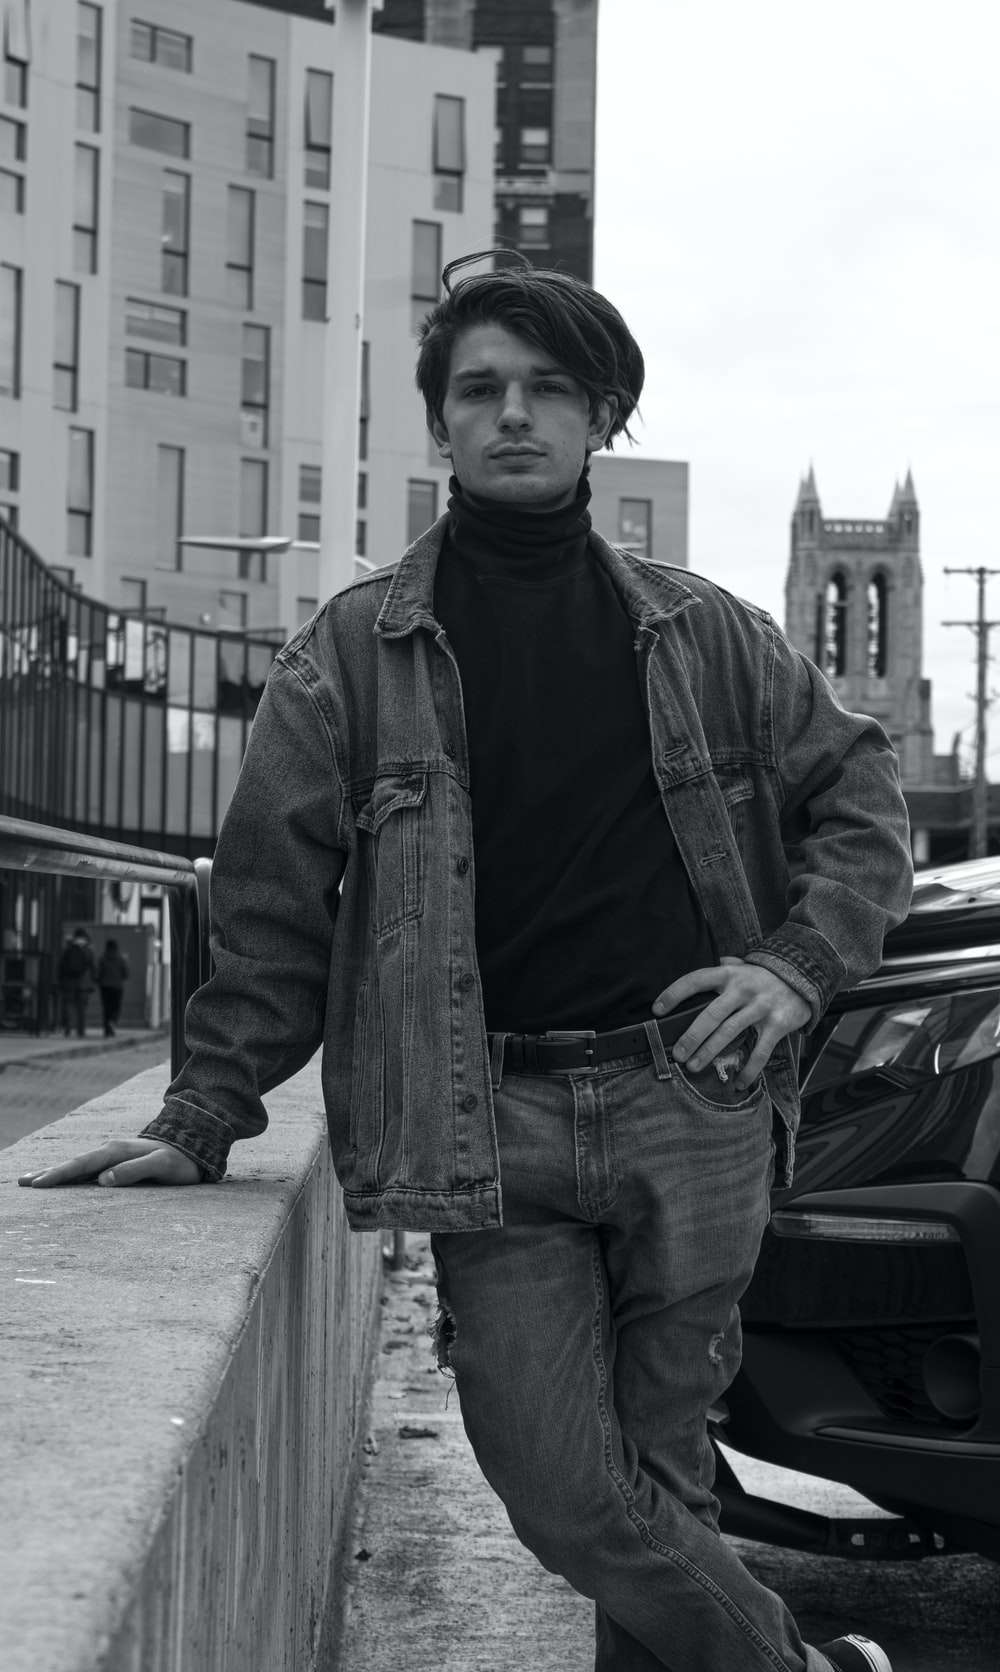 man in black leather jacket and denim jeans standing beside car